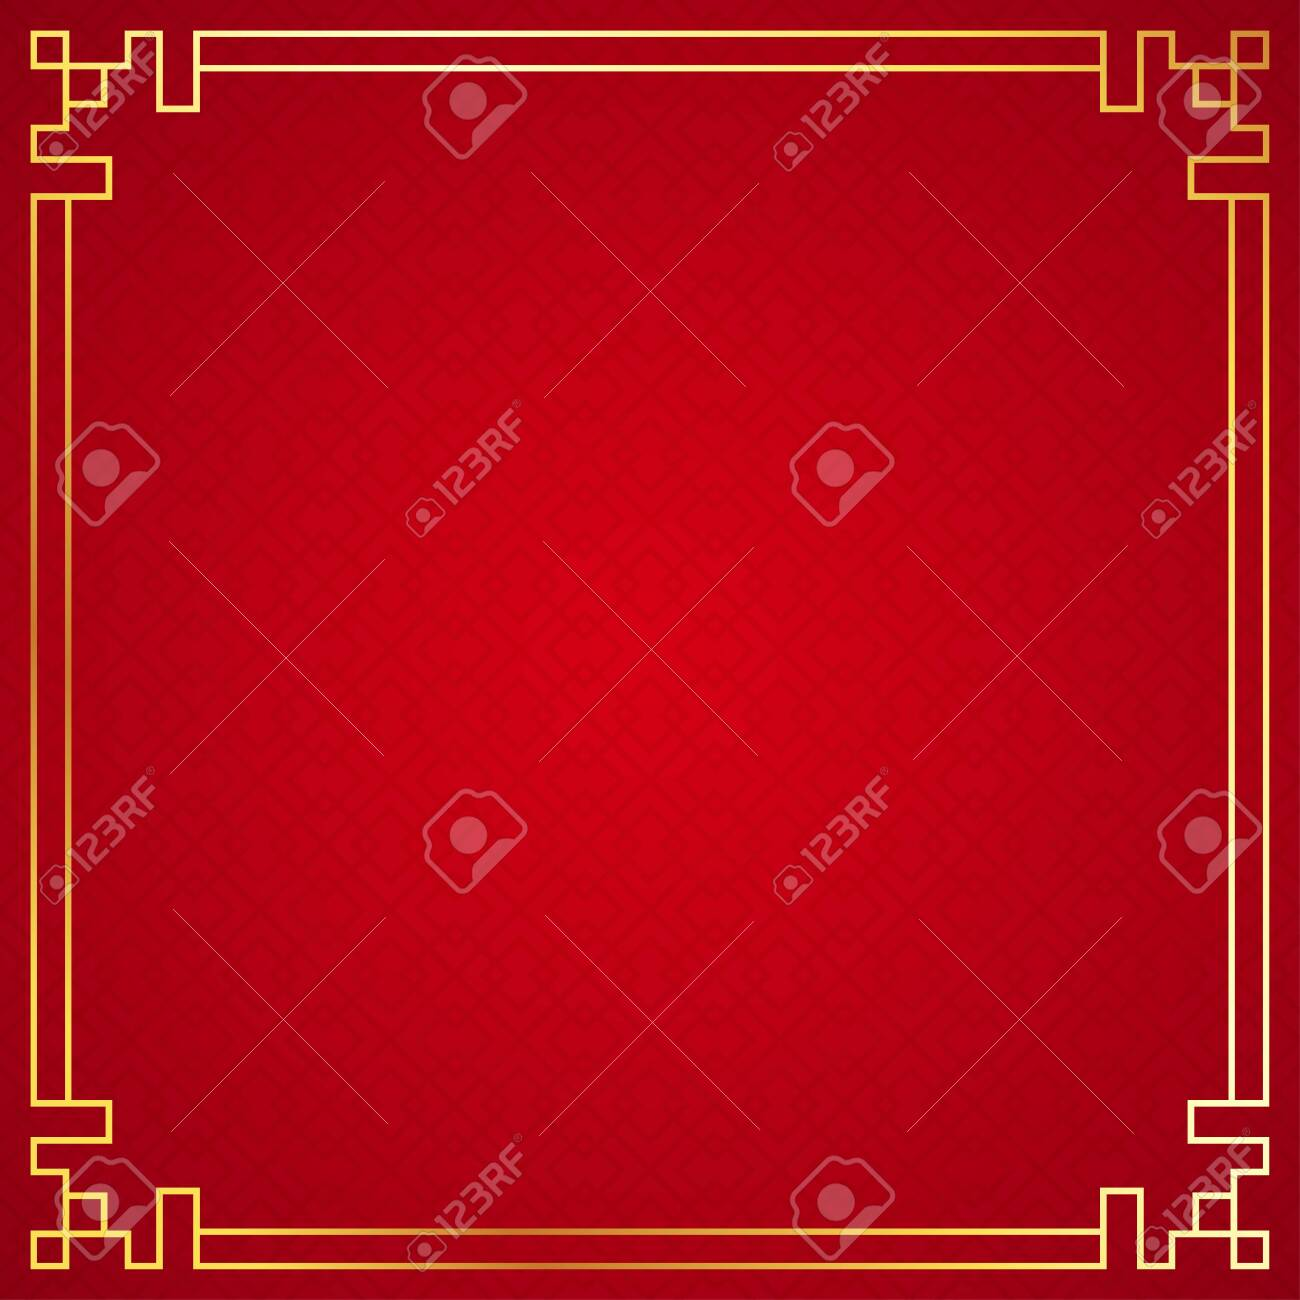 Oriental chinese border ornament on red background, vector illustration - 134012634